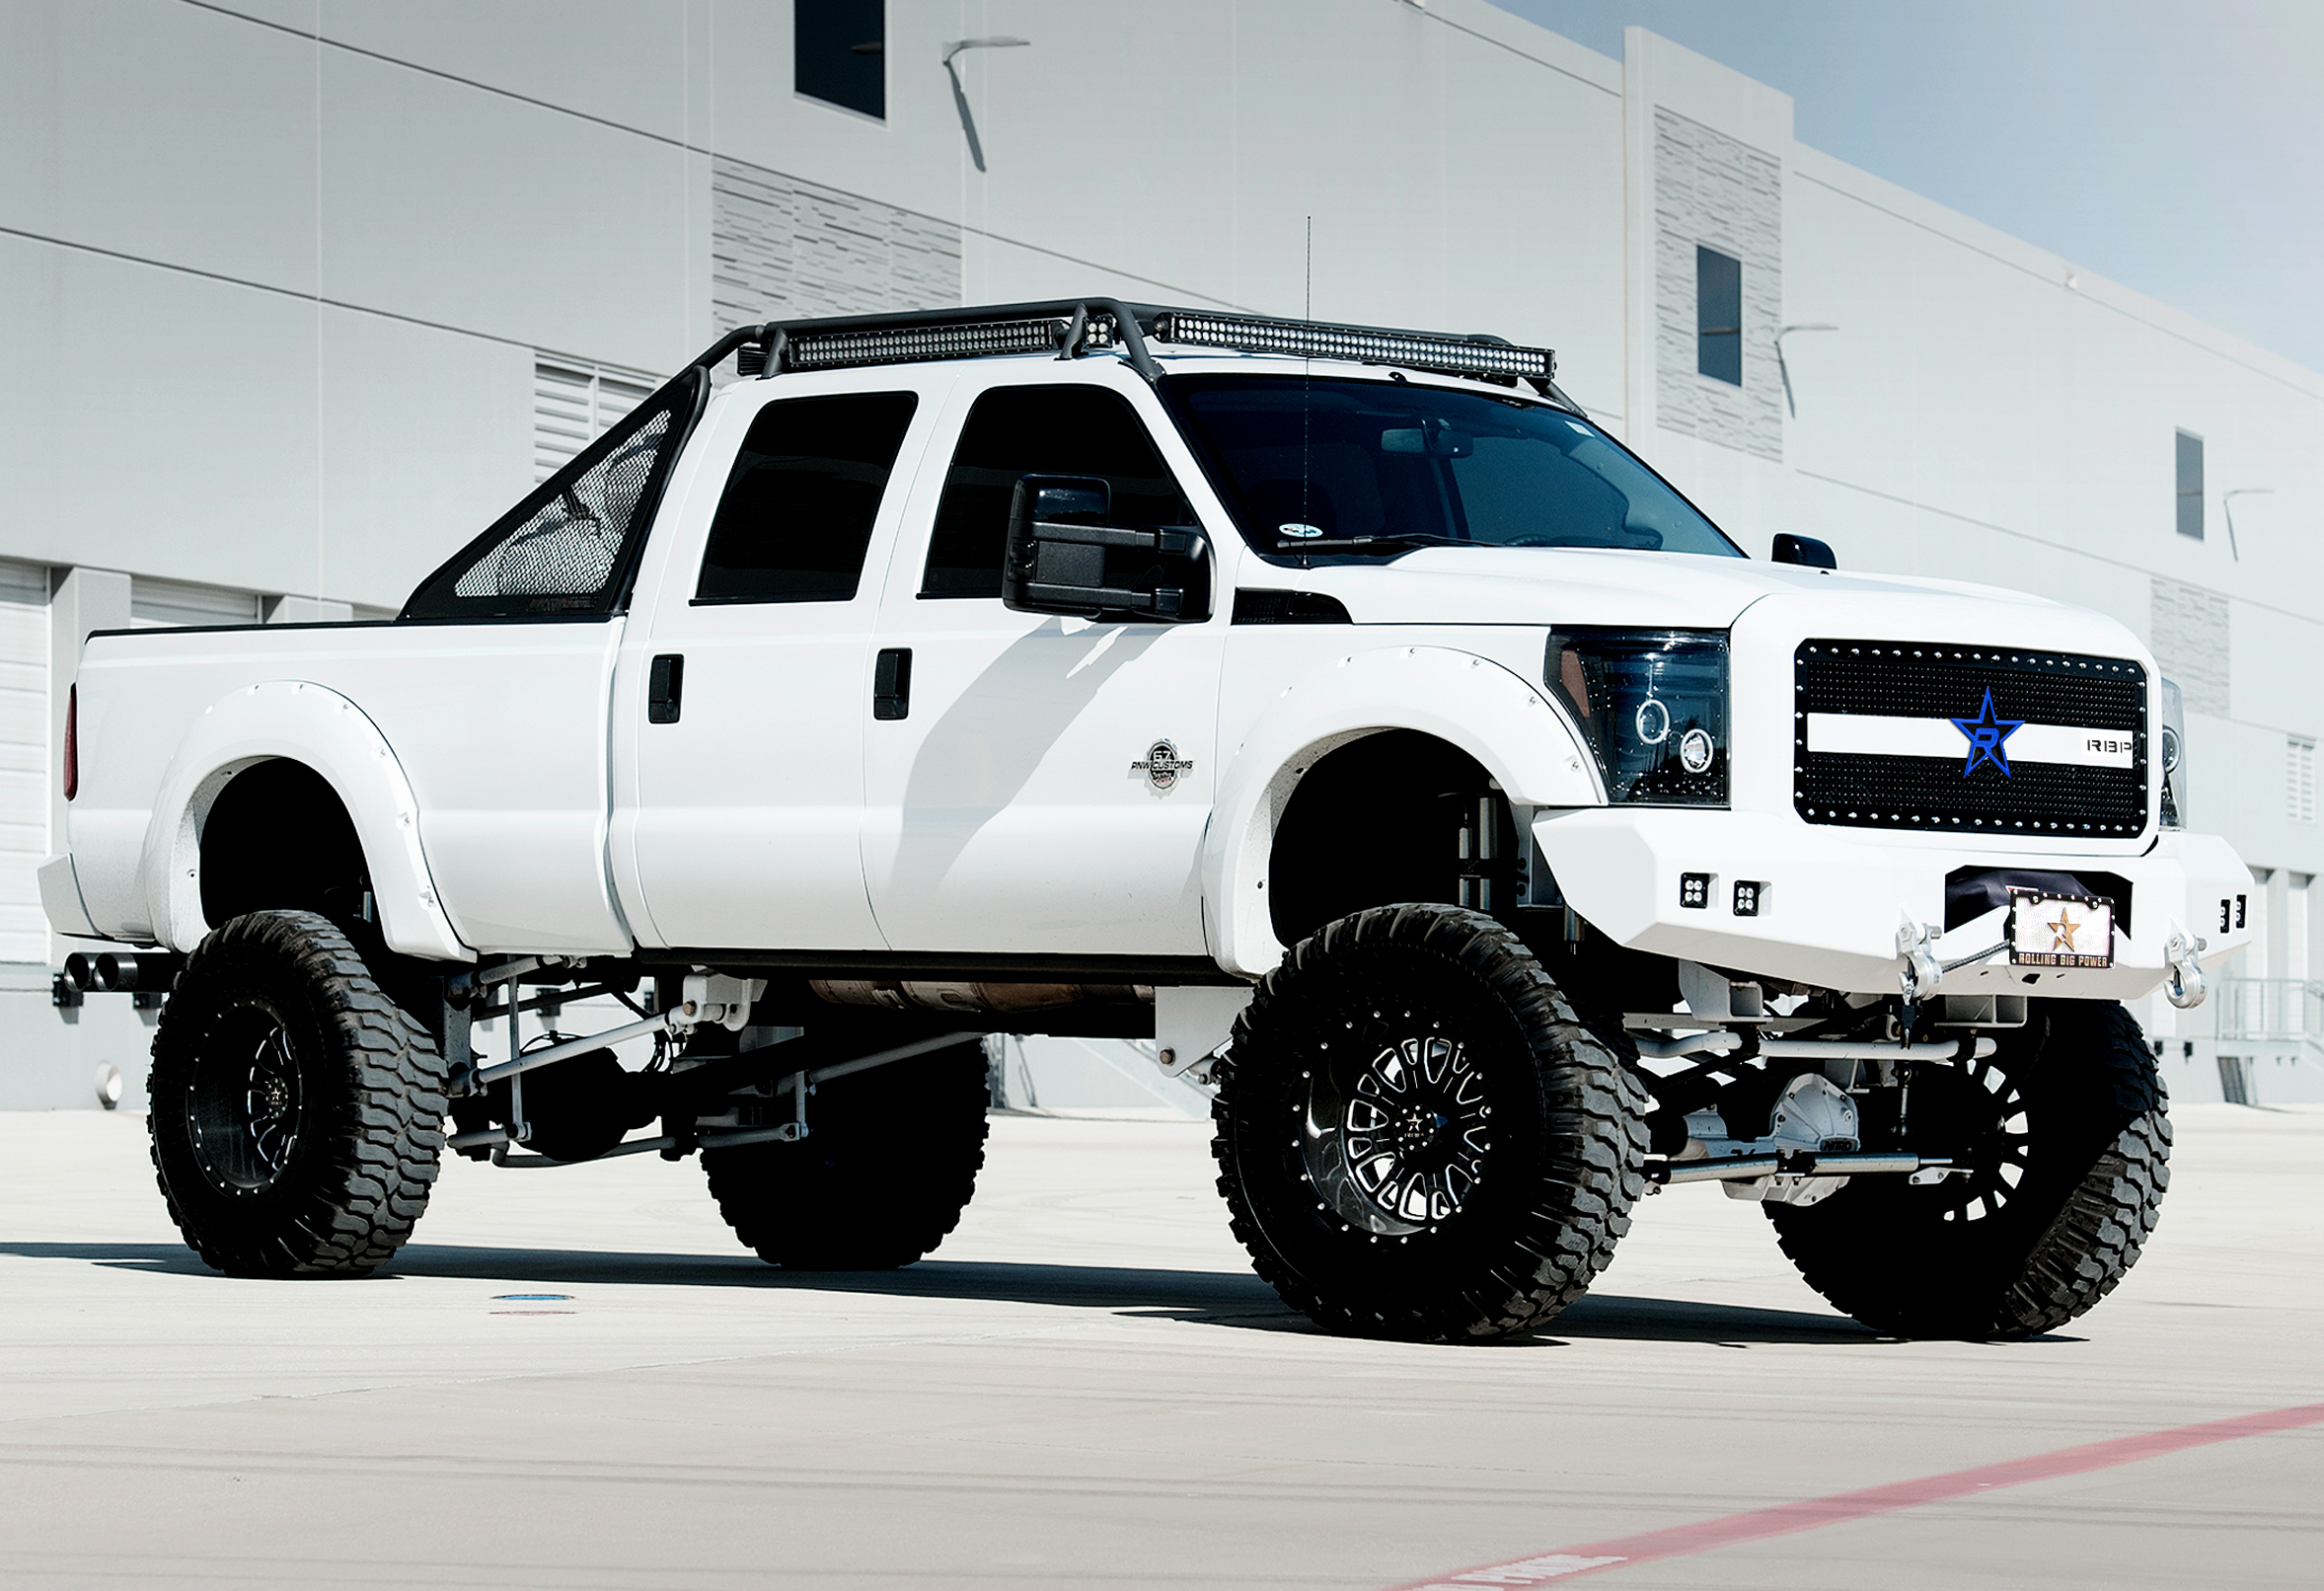 Lifted full size white Ford 4x4